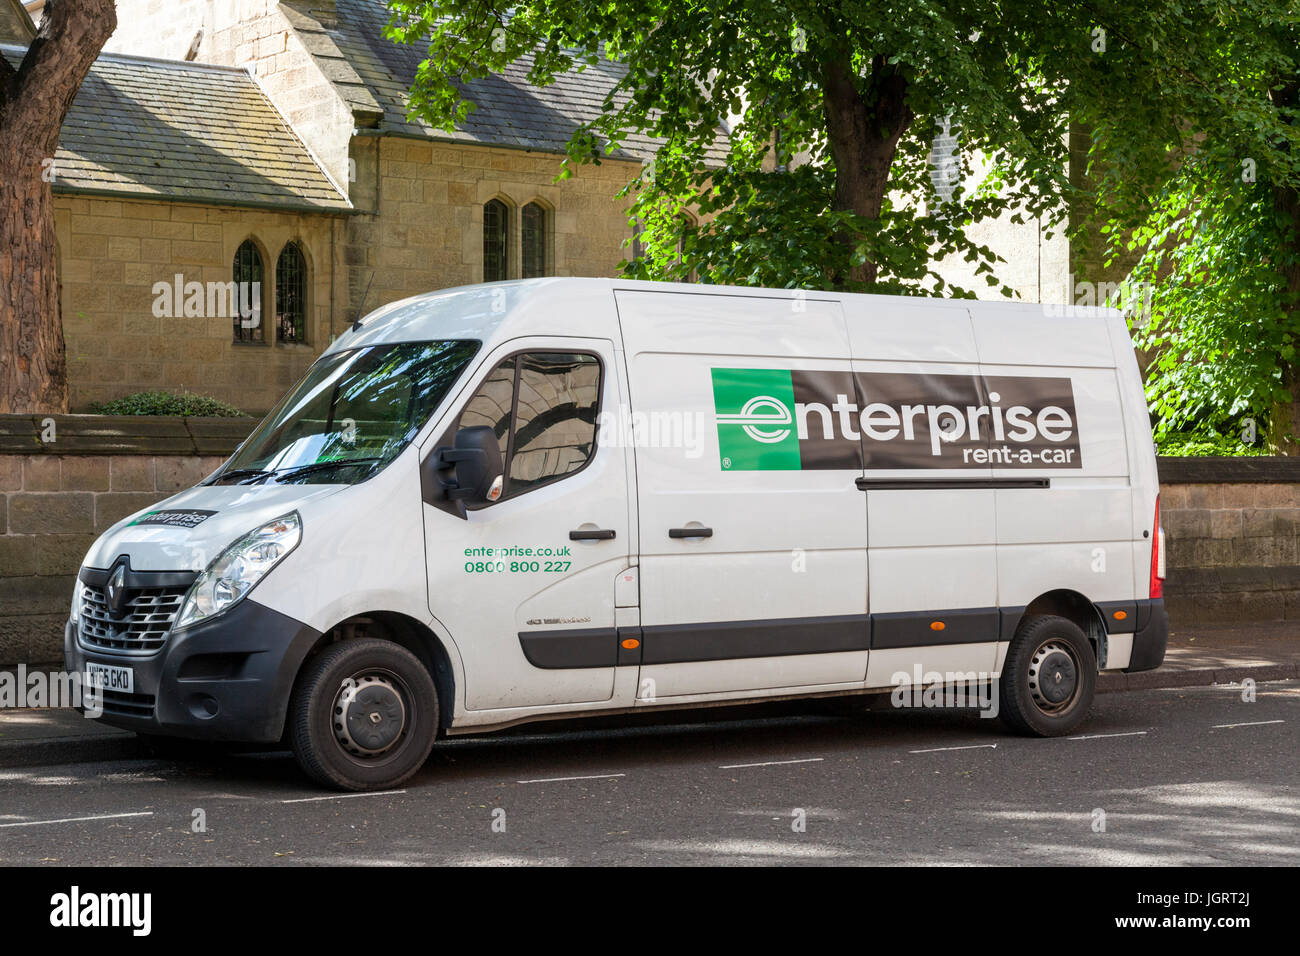 7d650e3e53 Enterprise Rent A Car Stock Photos   Enterprise Rent A Car Stock ...